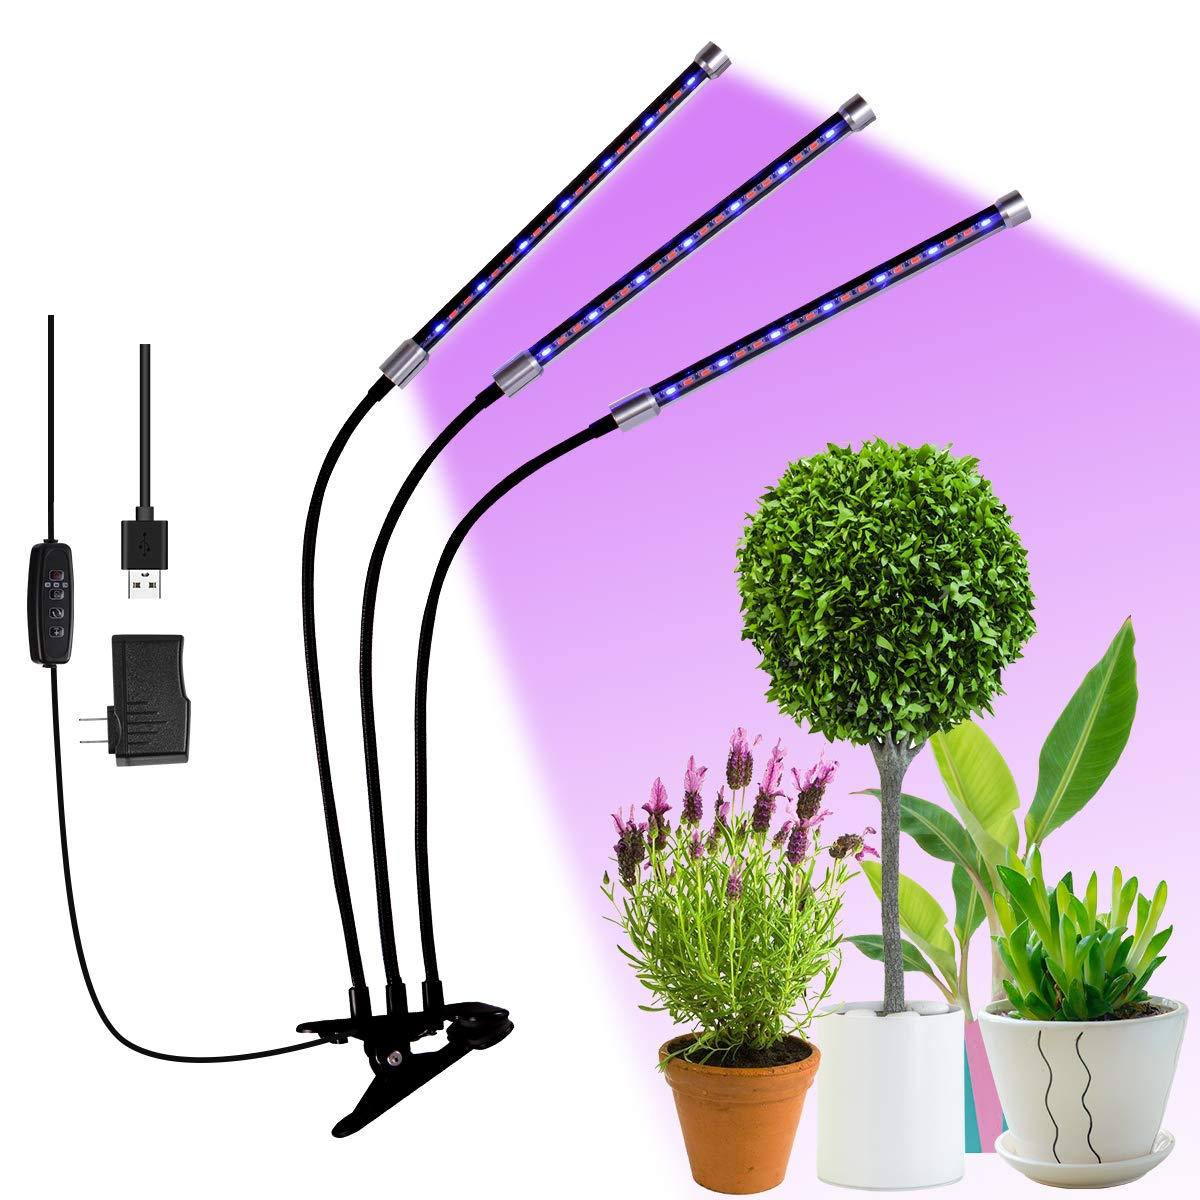 Hotec LED Plant Grow Lights for Indoor Plants with Timer, 27W Three Head Gooseneck Plant Lights with 8 Levels Dimming, Auto ON Off